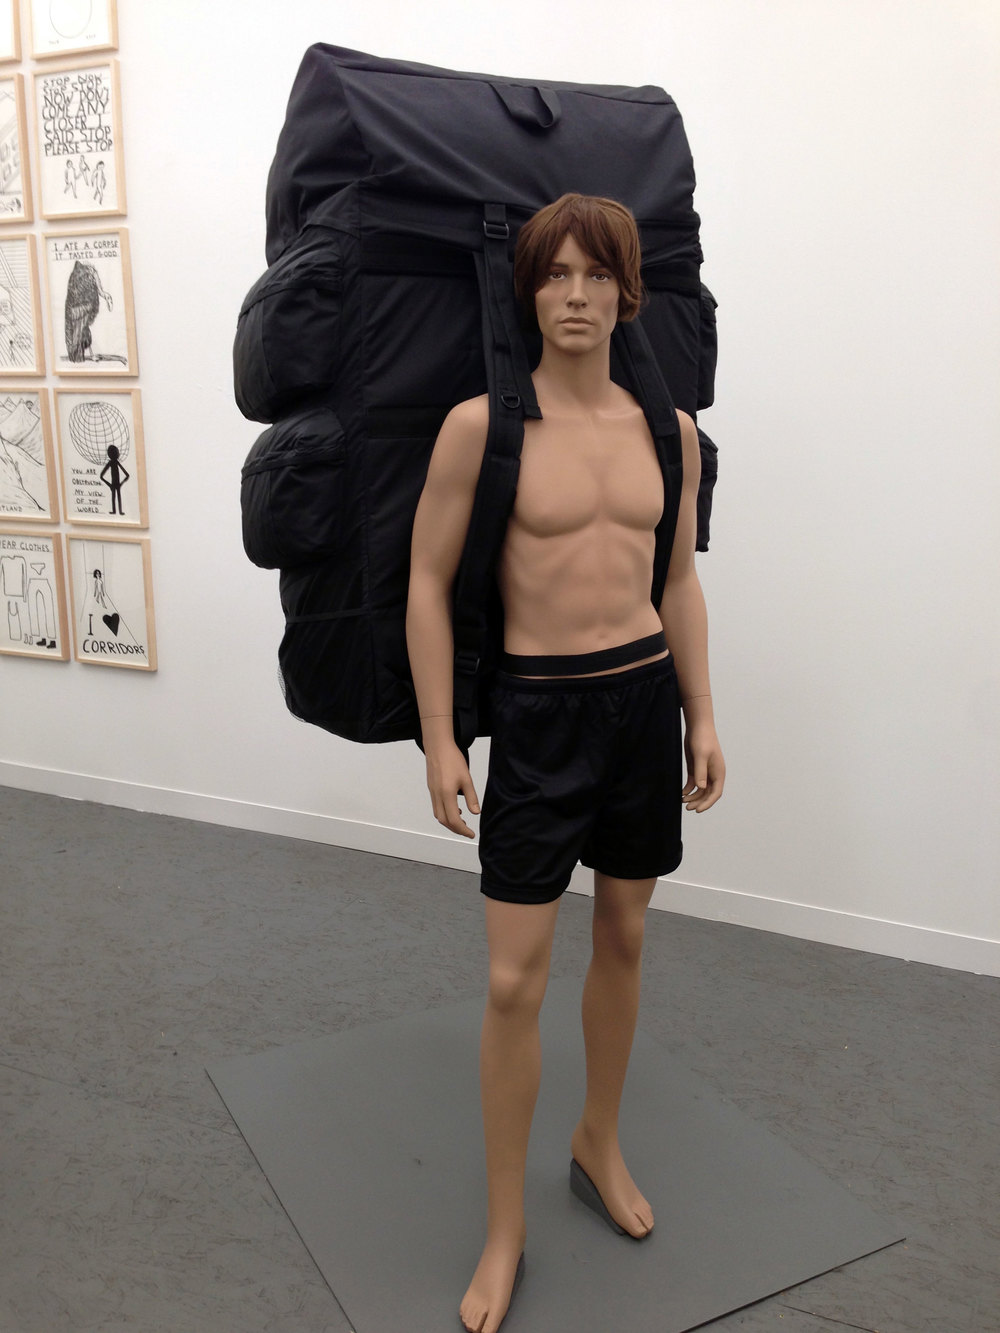 Shrigley's sculpture of a London back-packer would have been more impressive had it been a bit better detailed – more Ron Mueck than Top Man mannequin. And why's he got no shirt on?